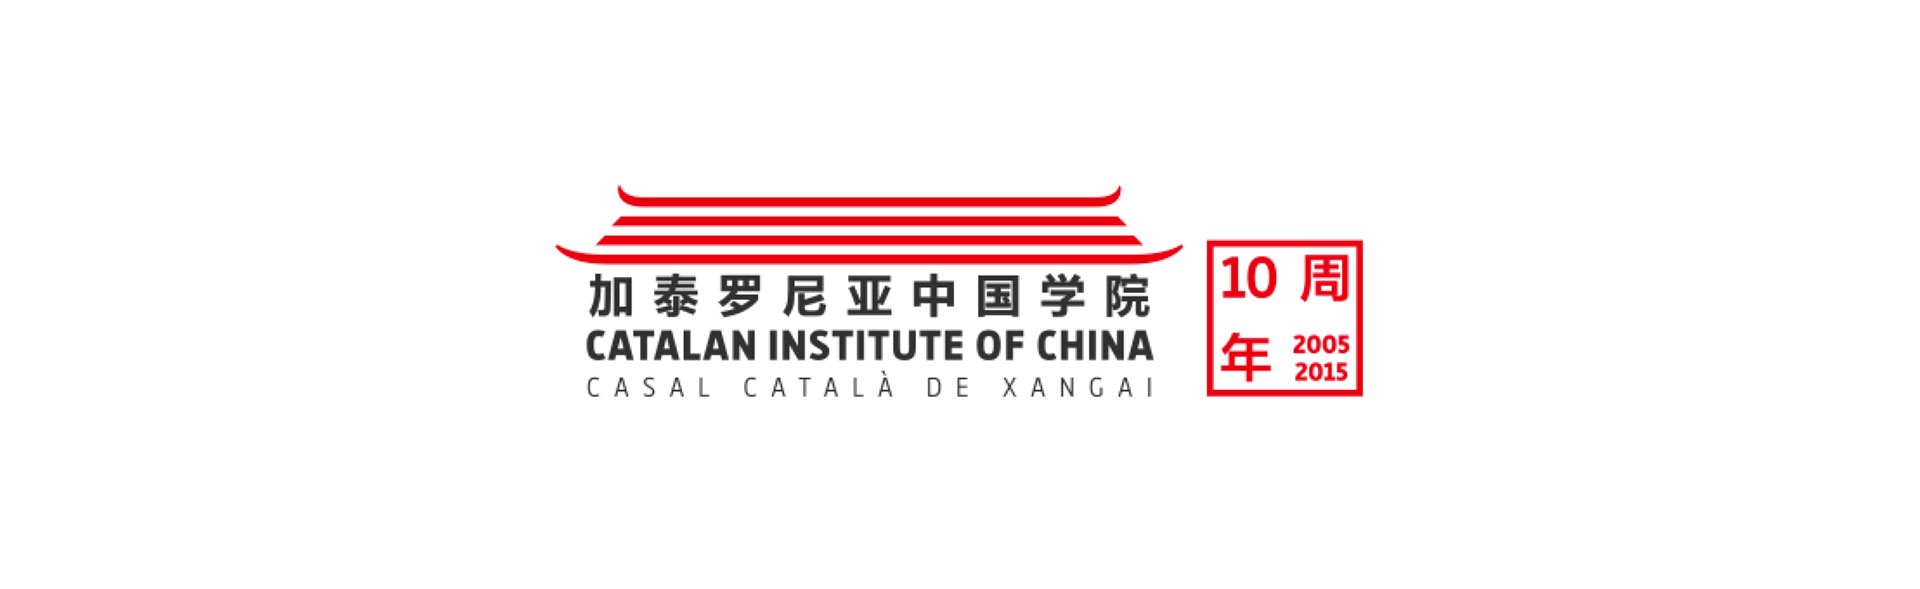 Barna Catalan Institute of China 1